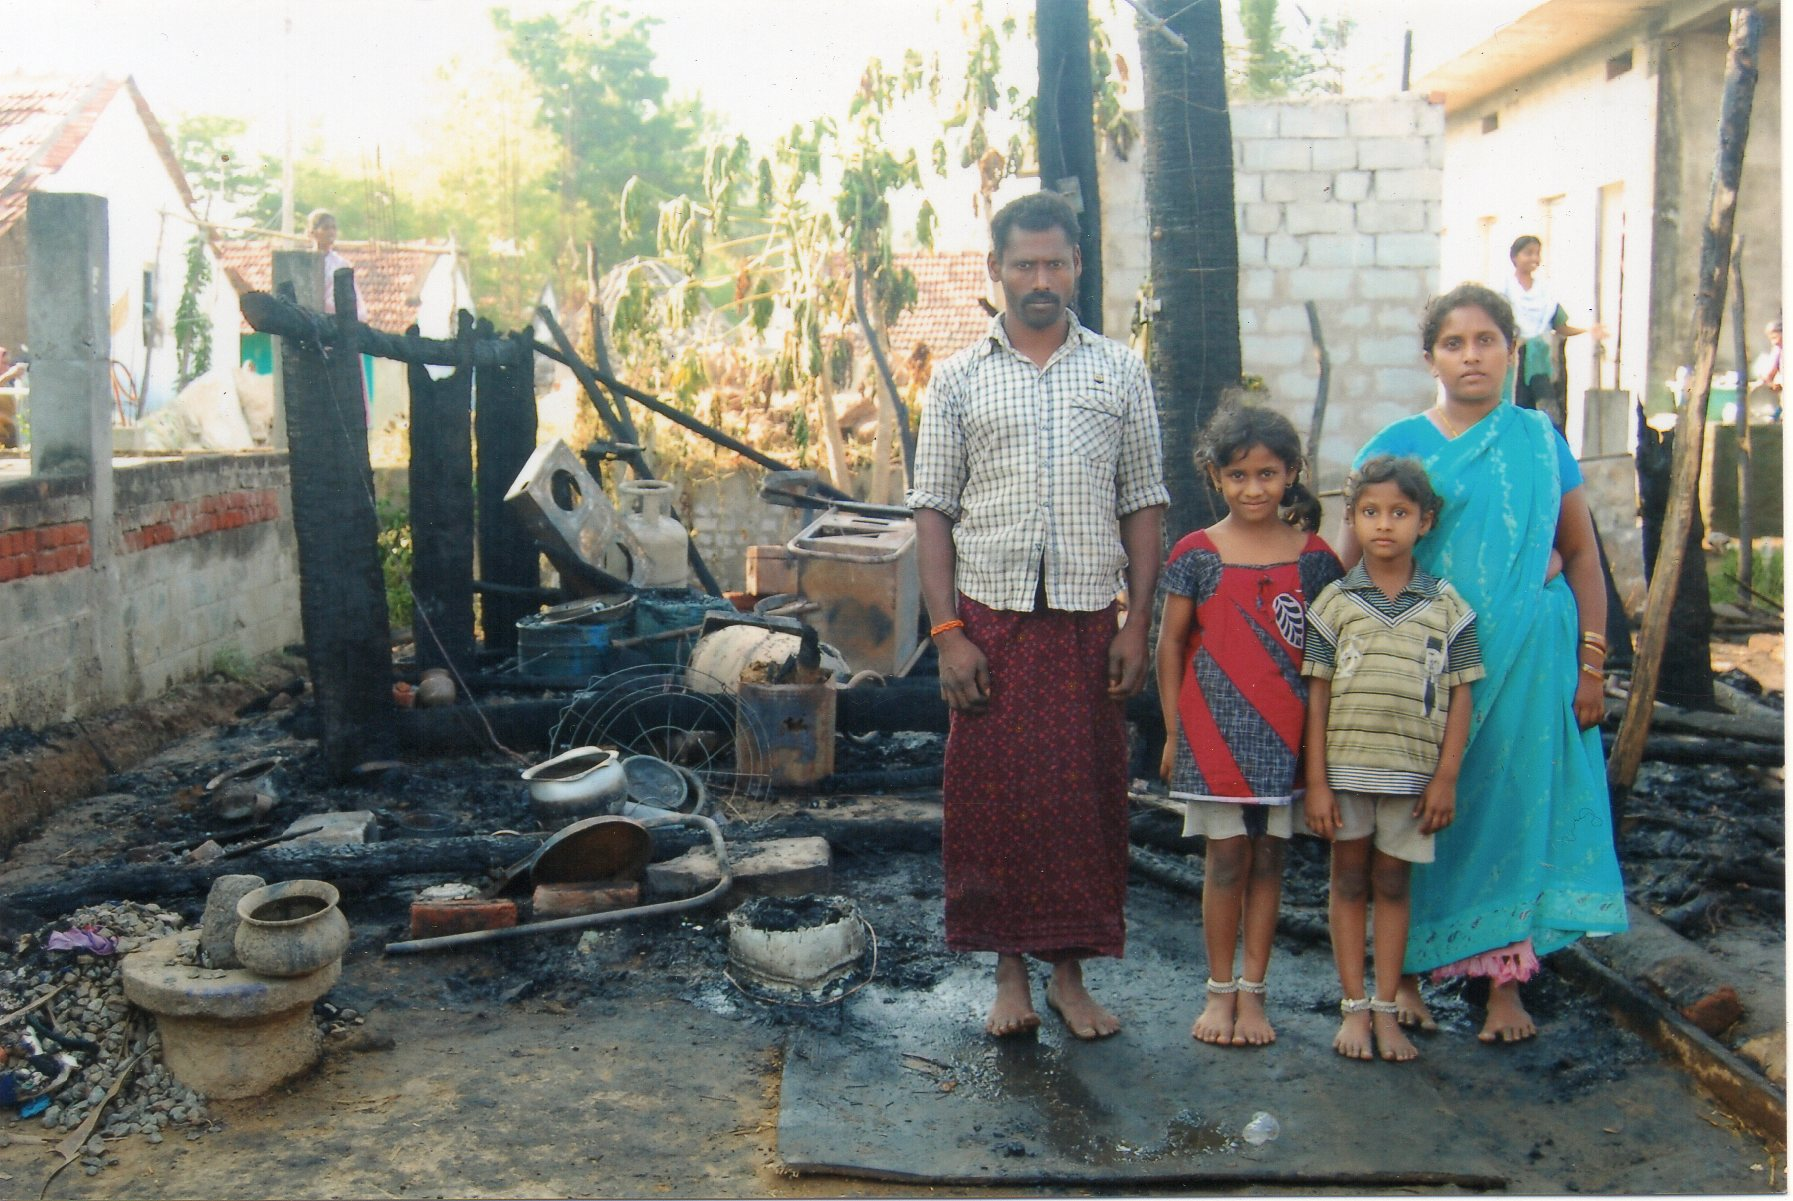 Fire destroys two homes in two Indian villages